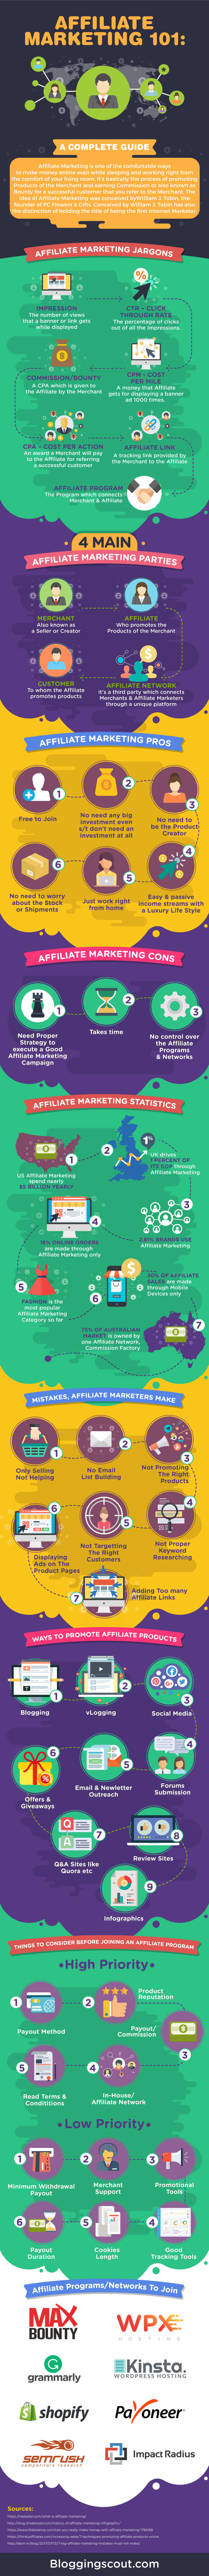 Affiliate-Marketing-101-infographic-plaza